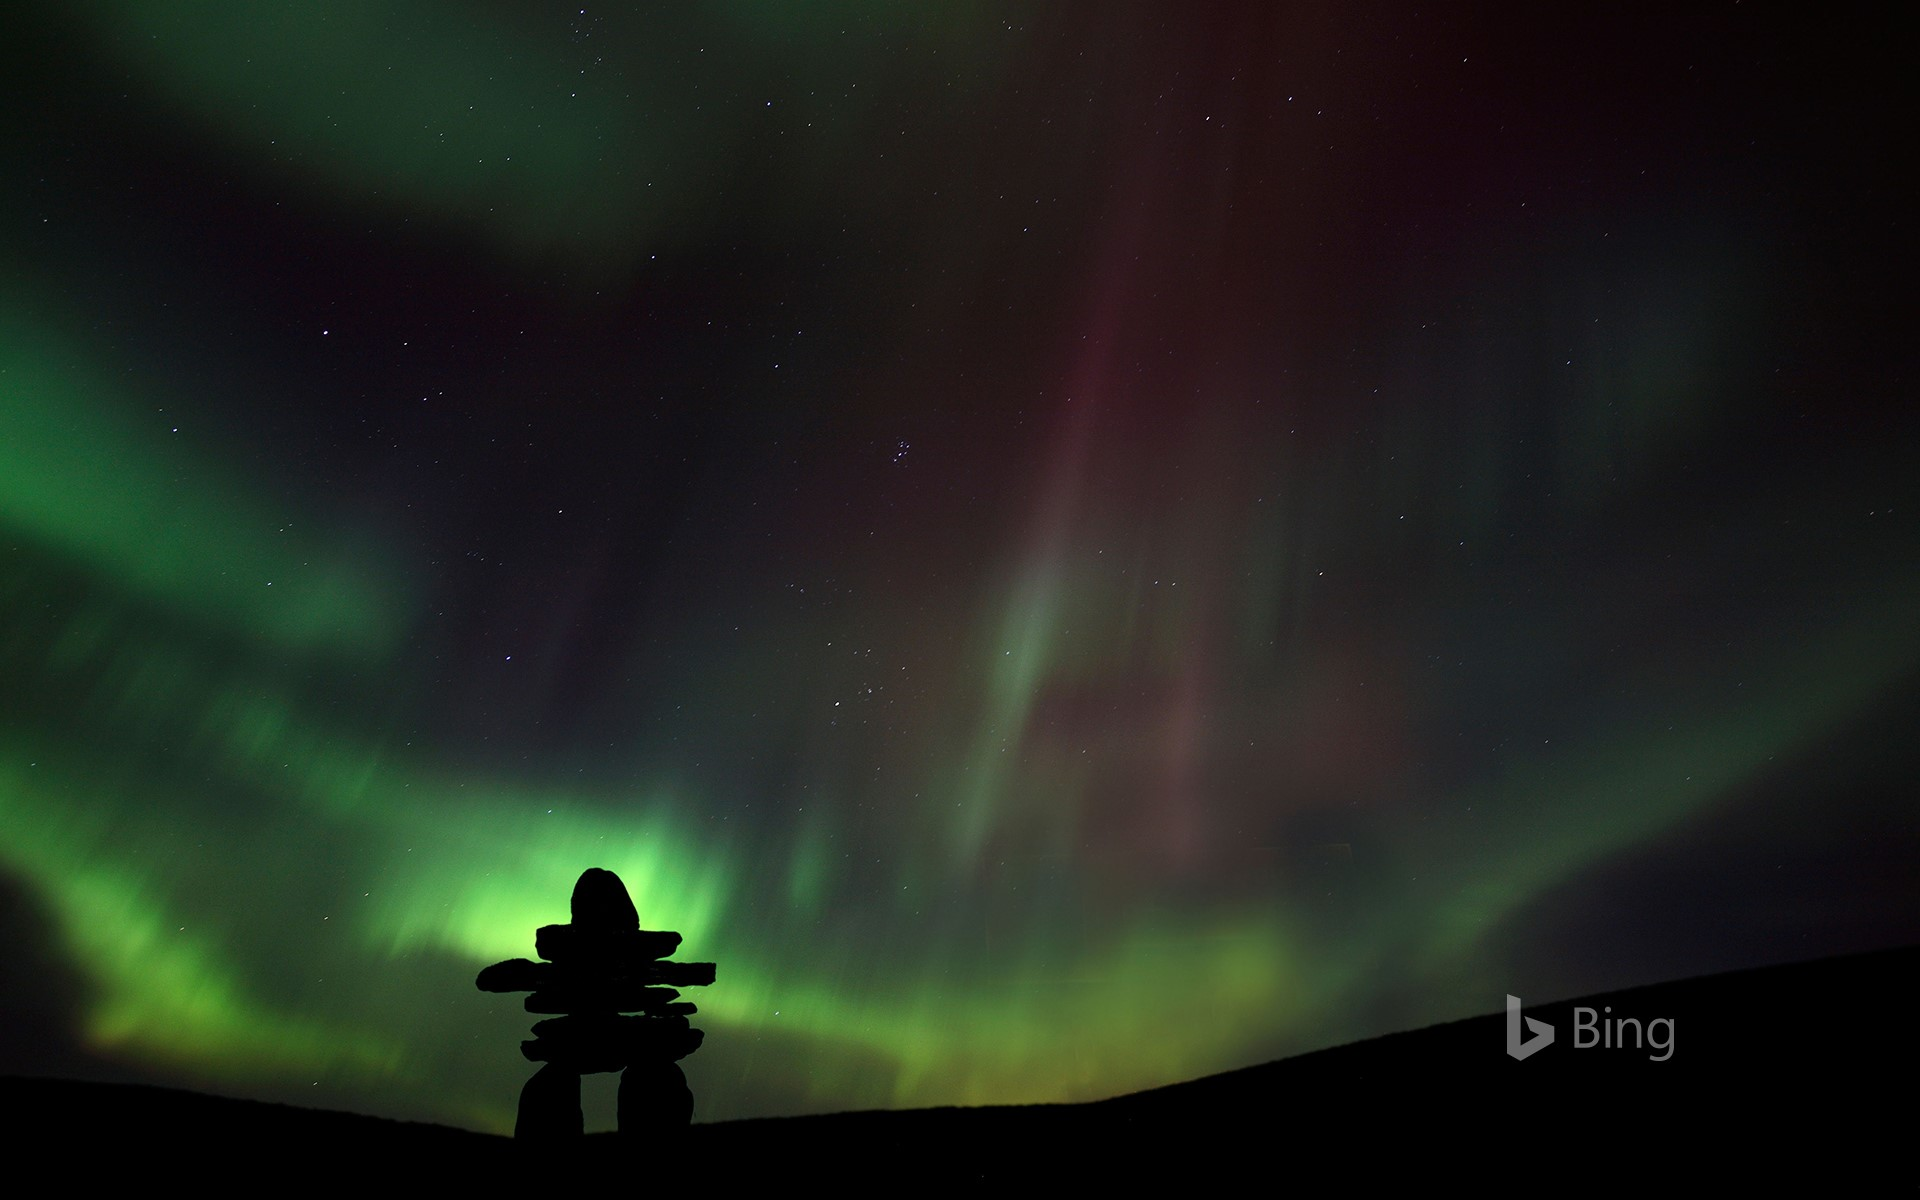 Inukshuk silhouetted against the northern lights in Barren Lands, Northwest Territories, Canada